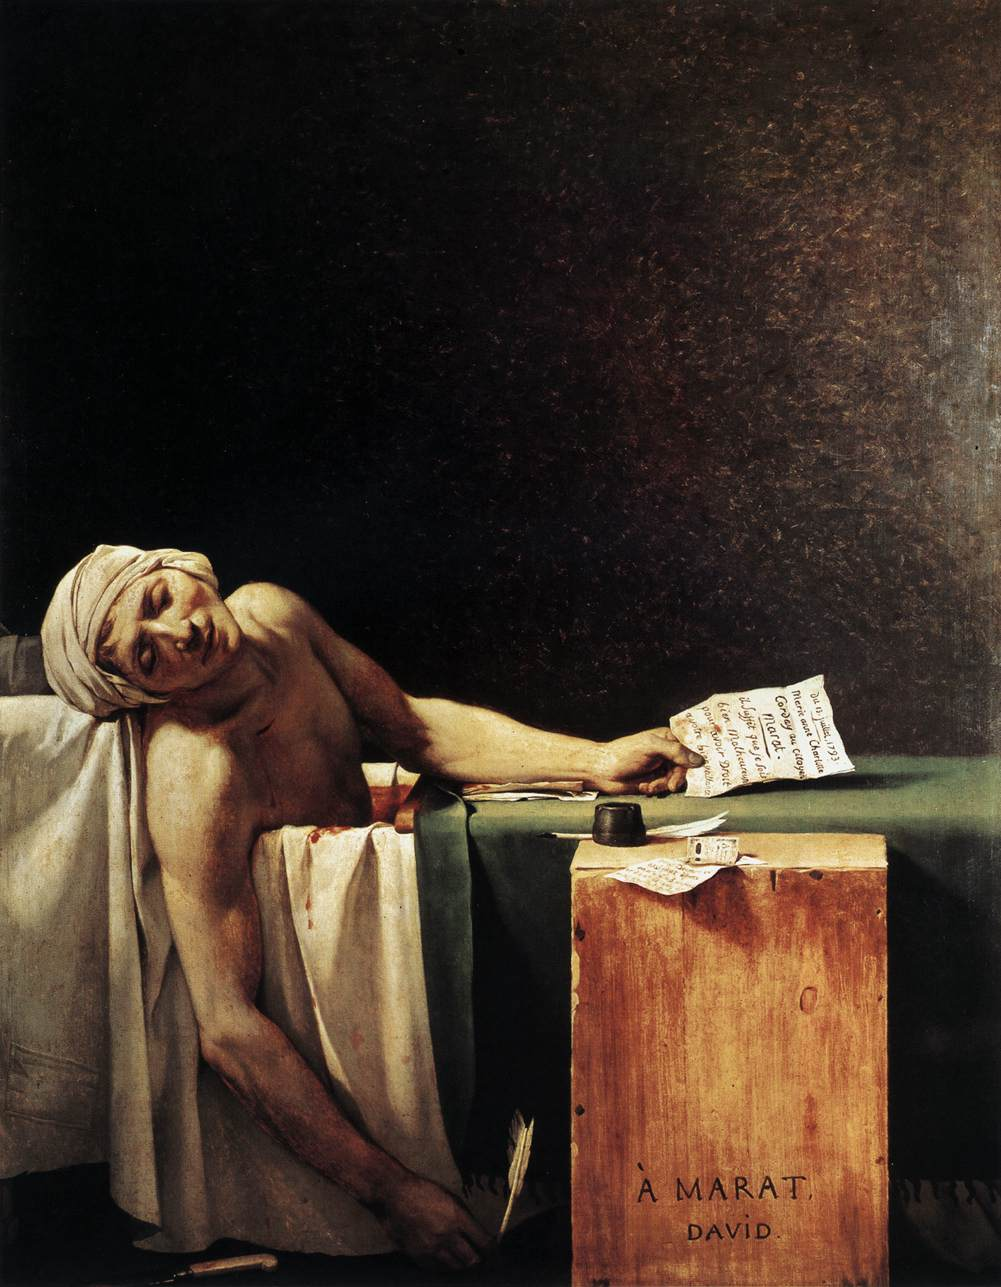 David Marat assassine 1793 Musee Royal Beaux Arts Bruxelles 165 x 128